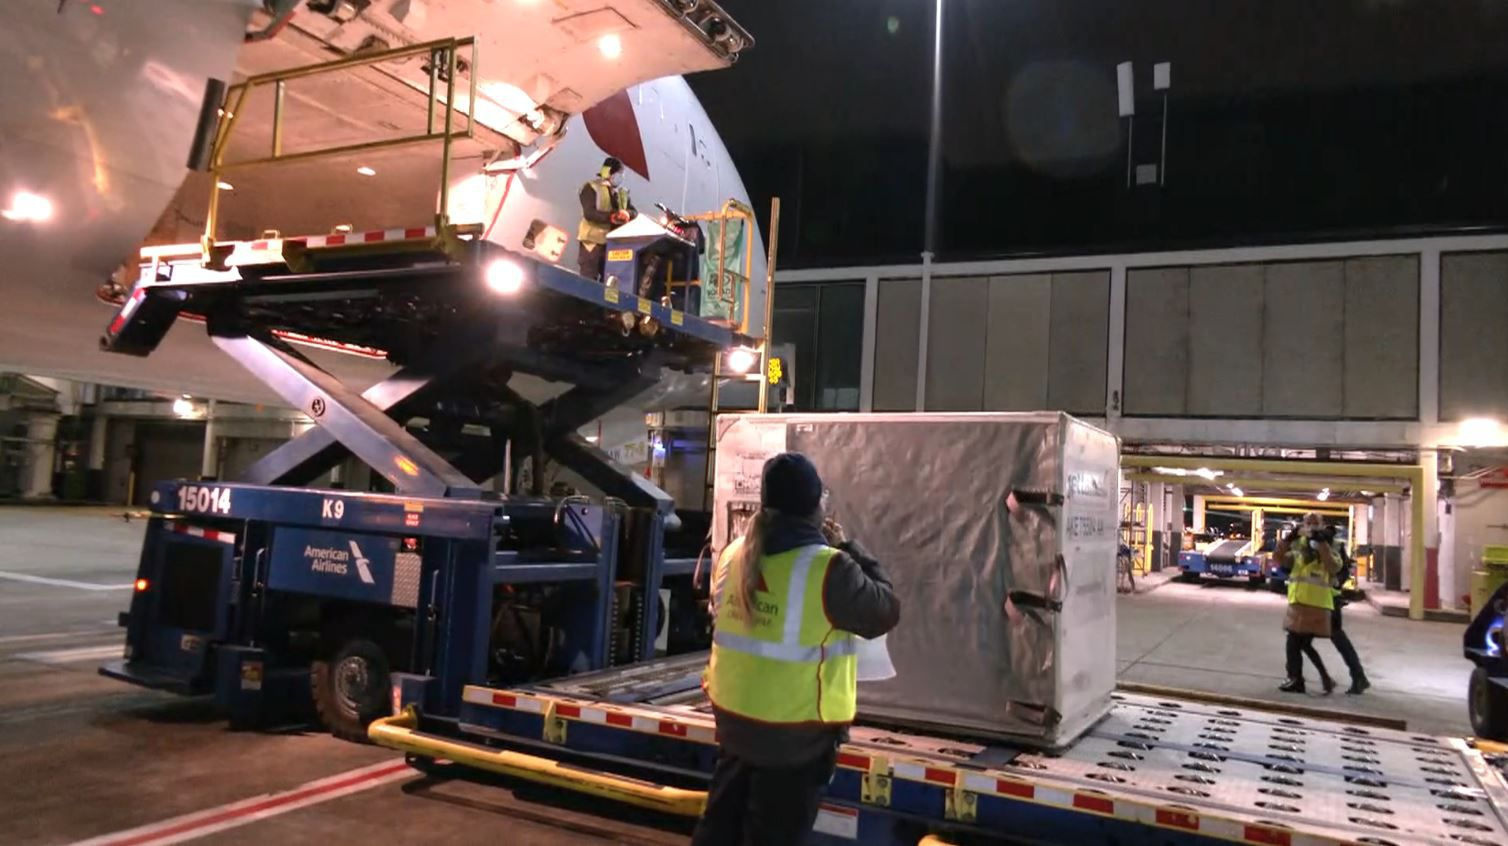 American Airlines workers at Chicago O'Hare International Airport load temperature-controlled shipments of COVID-19 vaccinations headed to Miami that will eventually go to a U.S. territory in the Caribbean.